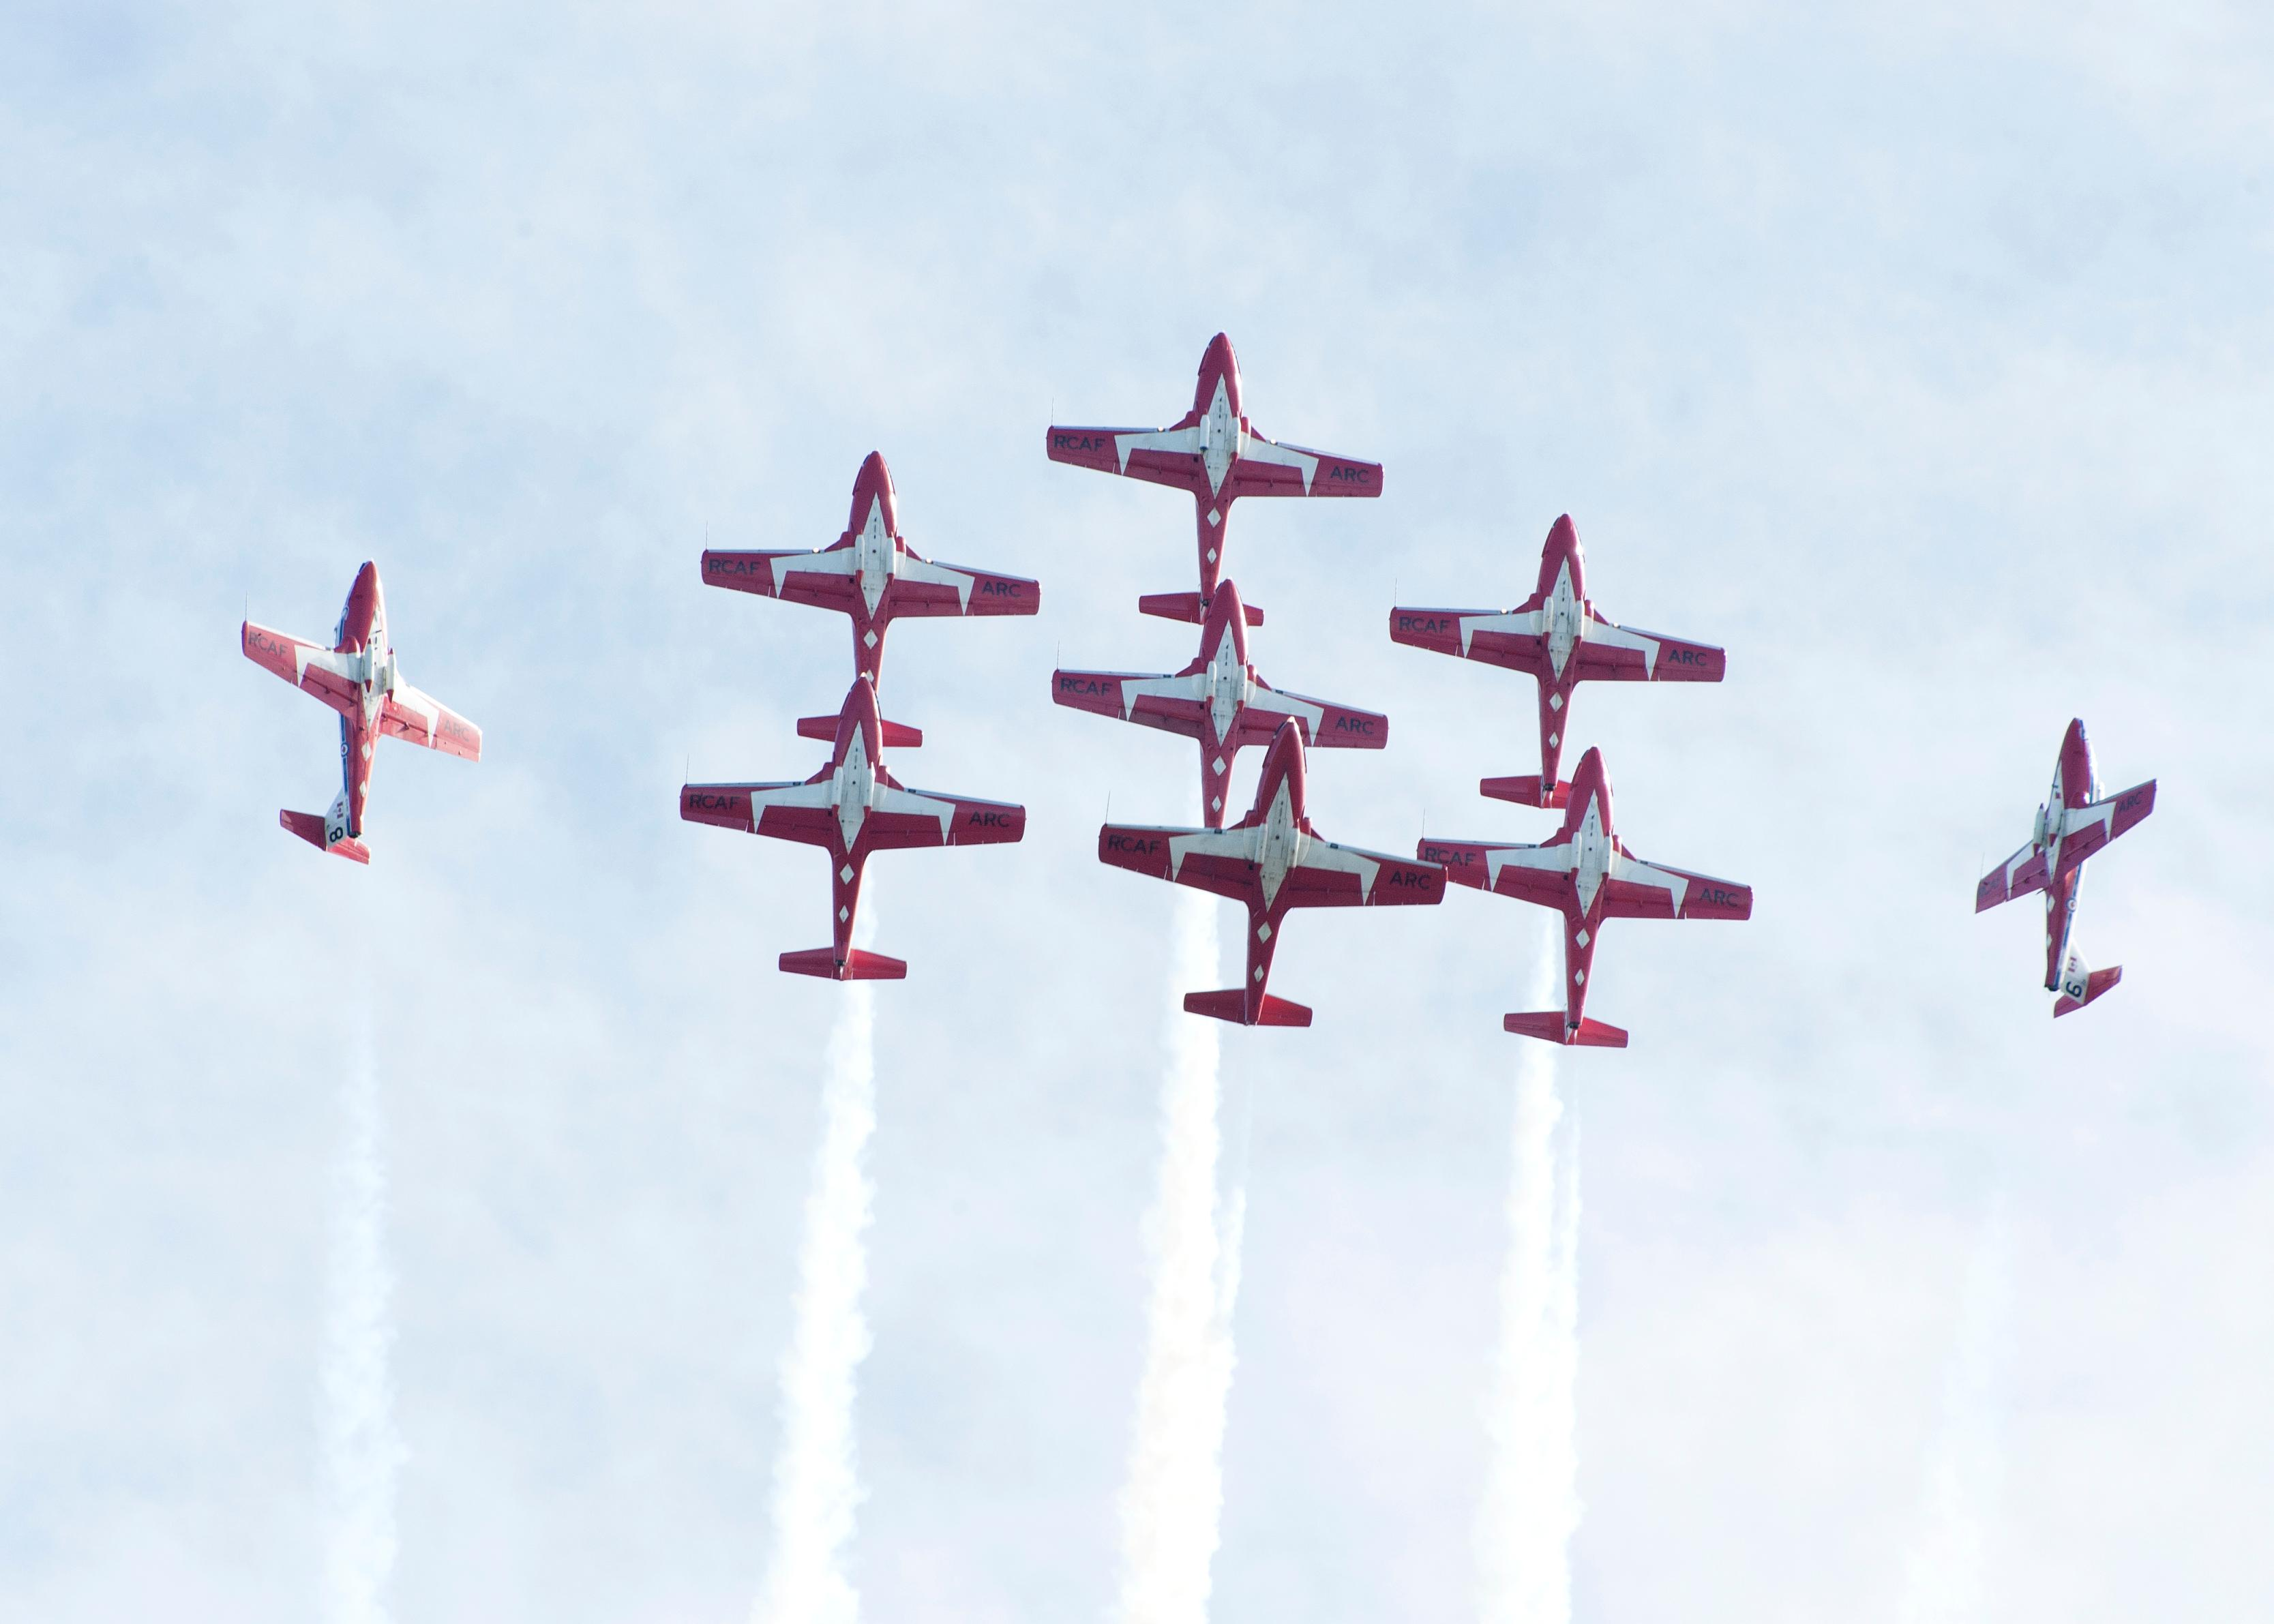 CX2015-0110-22The Canadian Armed Forces Snowbirds (431 Air Demonstration Squadron) perform over 19 Wing Comox during the acceptance show.The Canadian Armed Forces (CAF) Snowbirds (431 Air Demonstration Squadron) and The CAF CF-188 Hornet Demonstration Team are deployed to 19 Wing Comox, British Columbia, to complete training prior to the start of the 2015 Air Show season from the 15 to the 30 April 2015.Image: Sgt Halina Folfas, 19 Wing ImagingCX2015-0110-22Des avions Snowbird des Forces armes canadiennes effectuent des manuvres au-dessus de la 19e Escadre Comox lors du spectacle dinauguration.Les Snowbirds (431e Escadron de dmonstration arienne) des Forces armes canadiennes (FAC) et l?quipe de dmonstration de chasseurs CF188 Hornet sont dploys  la 19e Escadre Comox (Colombie-Britannique) pour effectuer une sance dentranement avant le dbut de la saison des spectacles ariens 2015, qui aura lieu du 15 au 30 avril 2015.Image: Sgt Halina Folfas, Imagerie de la 19e Escadre